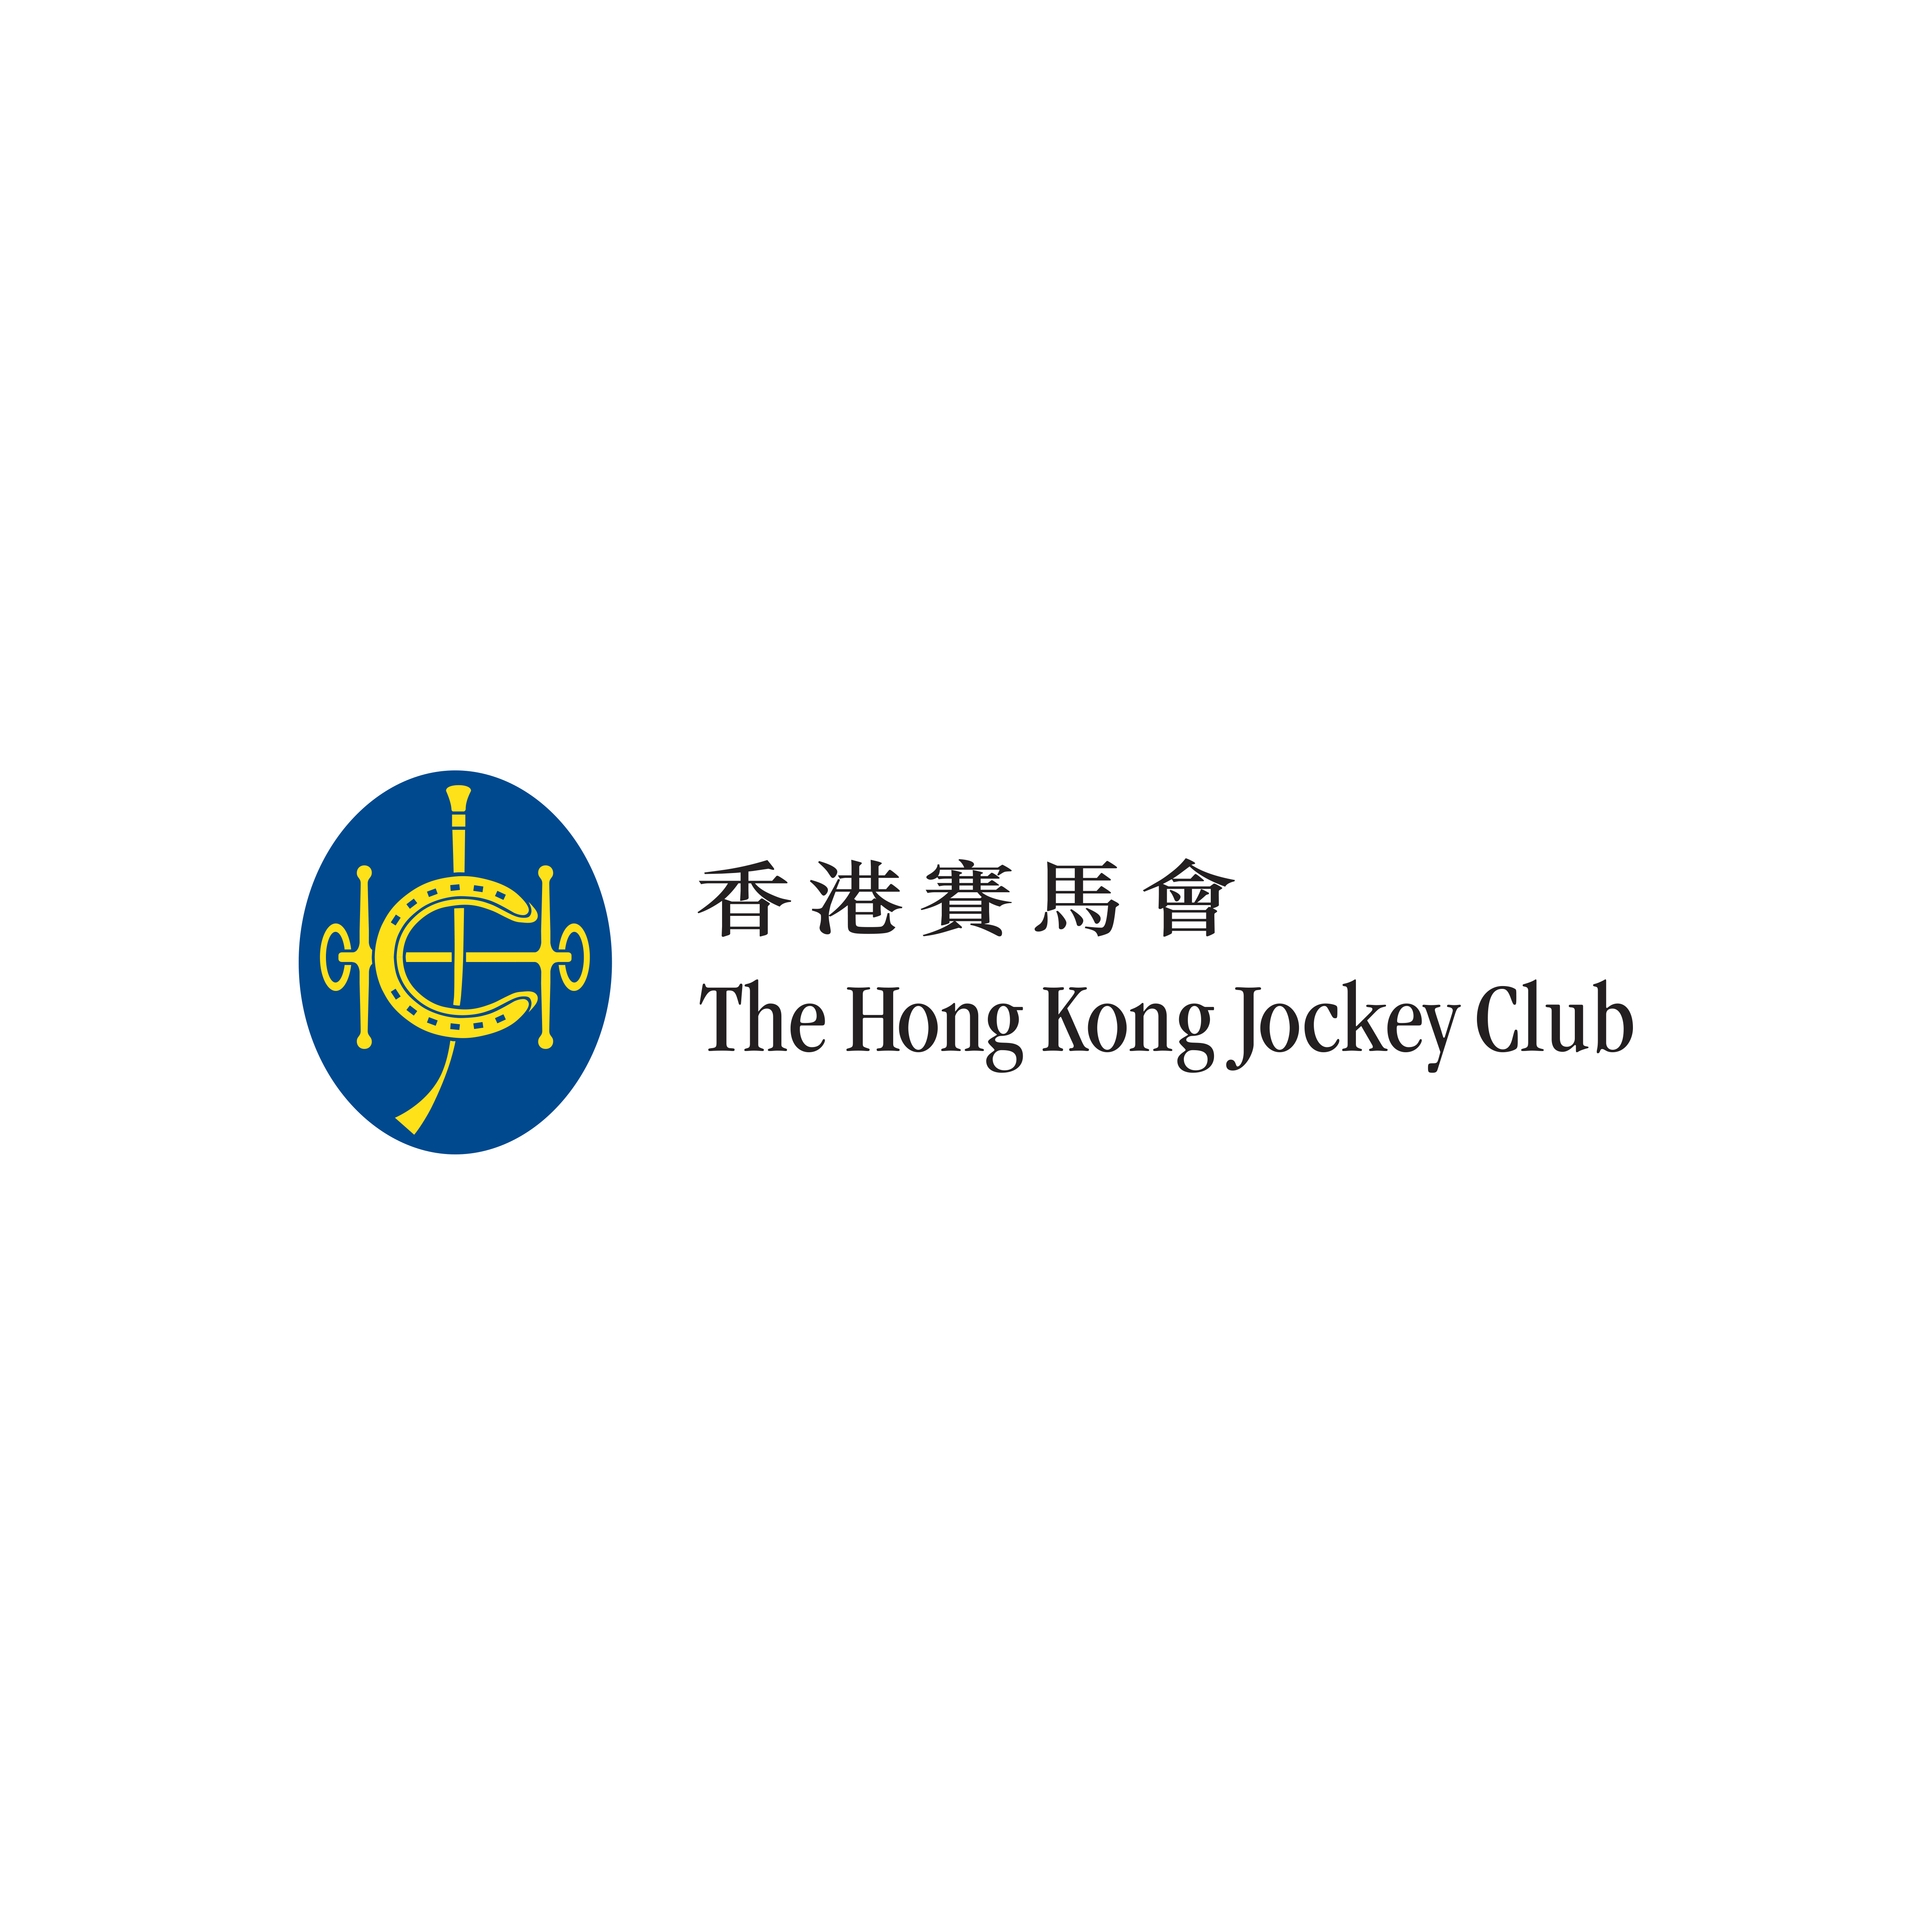 The Hong Kong Jockey Club